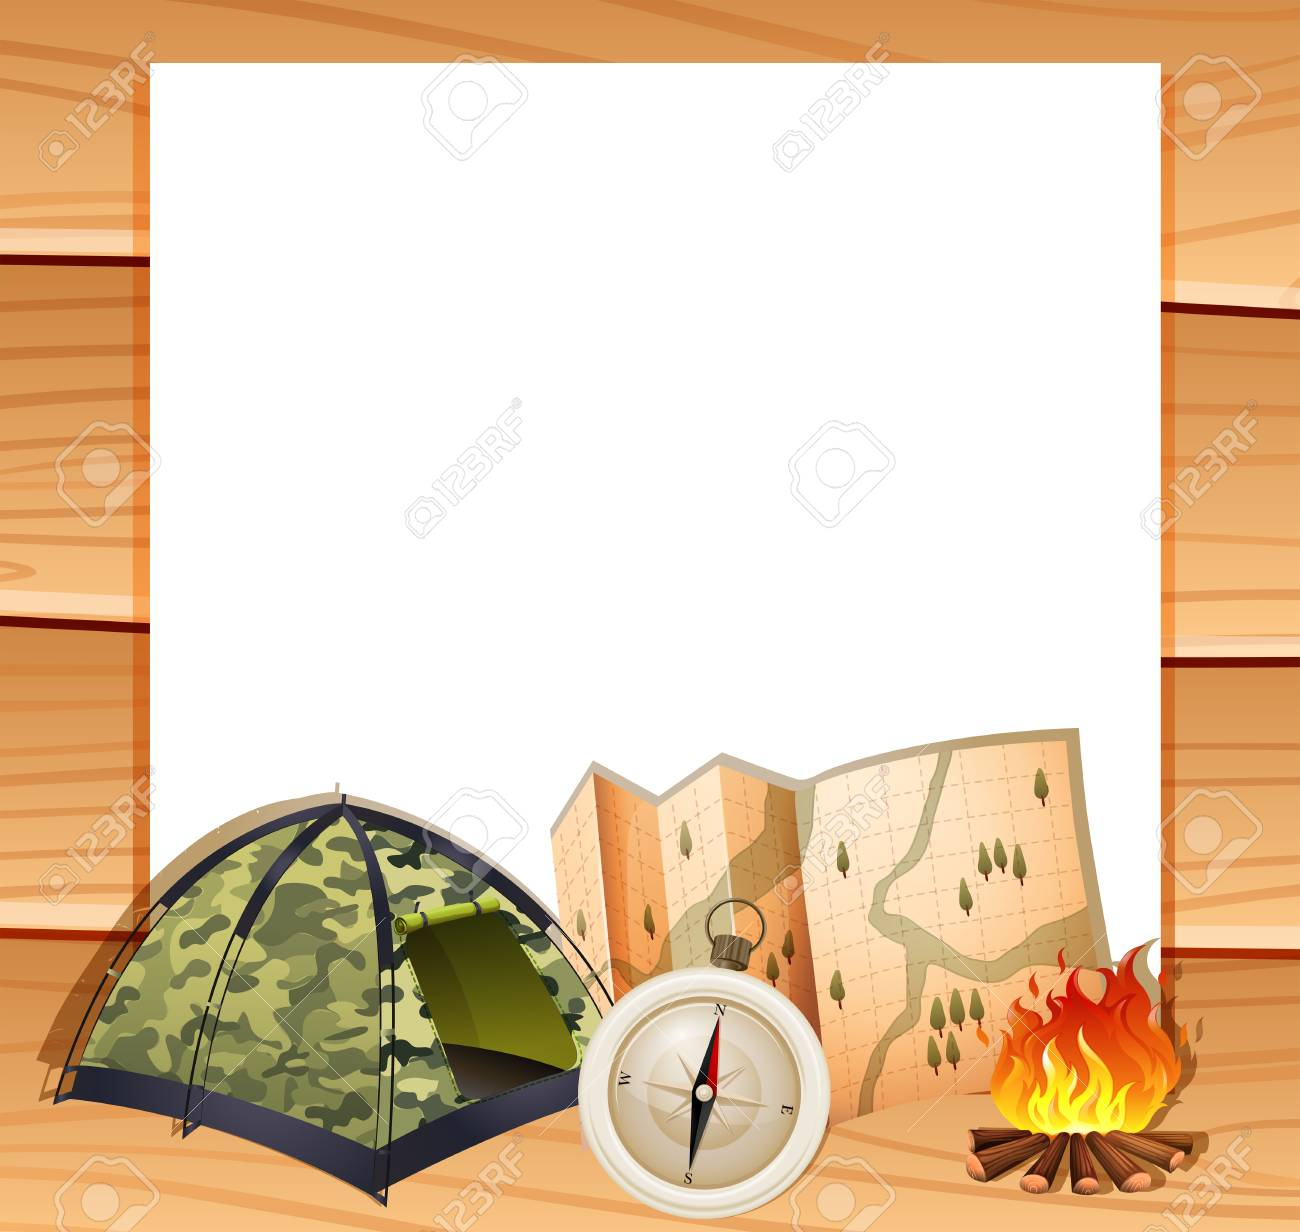 Border Design With Camping Equipments Illustration Stock Vector